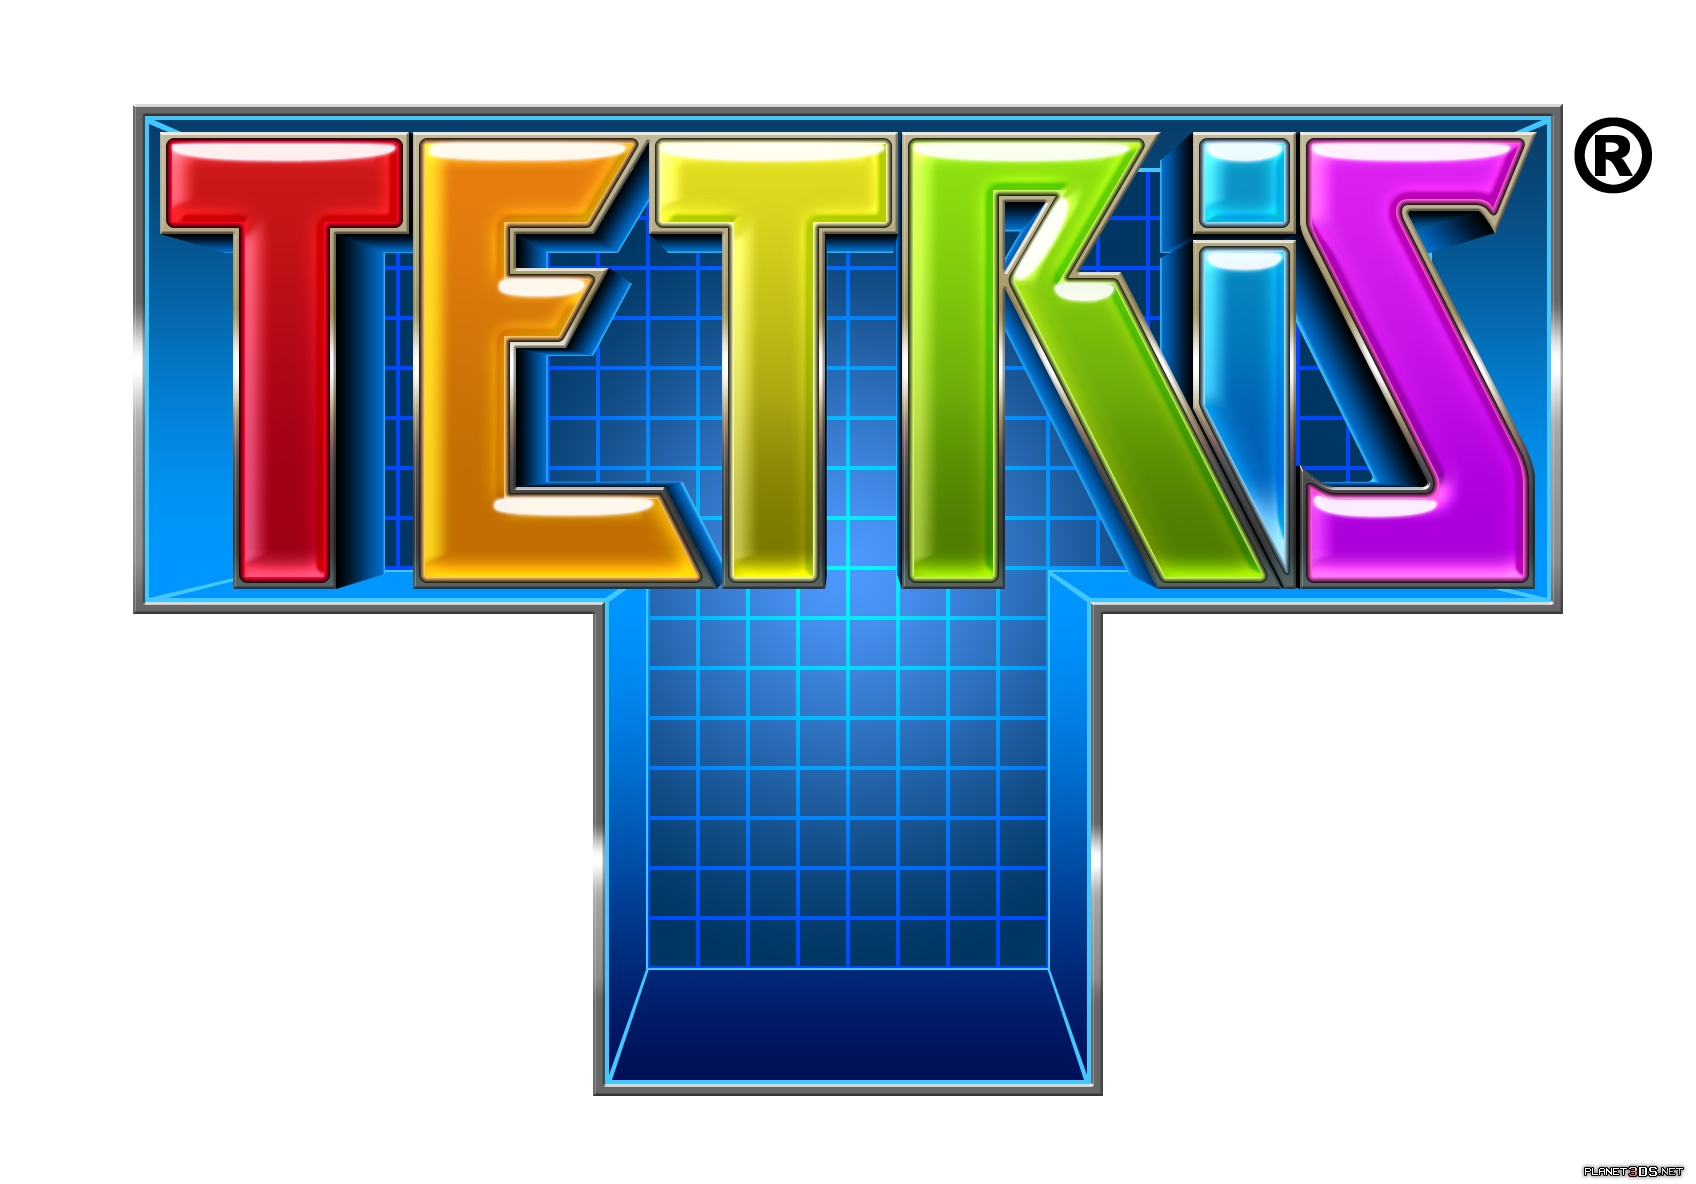 'First-ever' freemium Tetris title heading to iOS and Android this spring